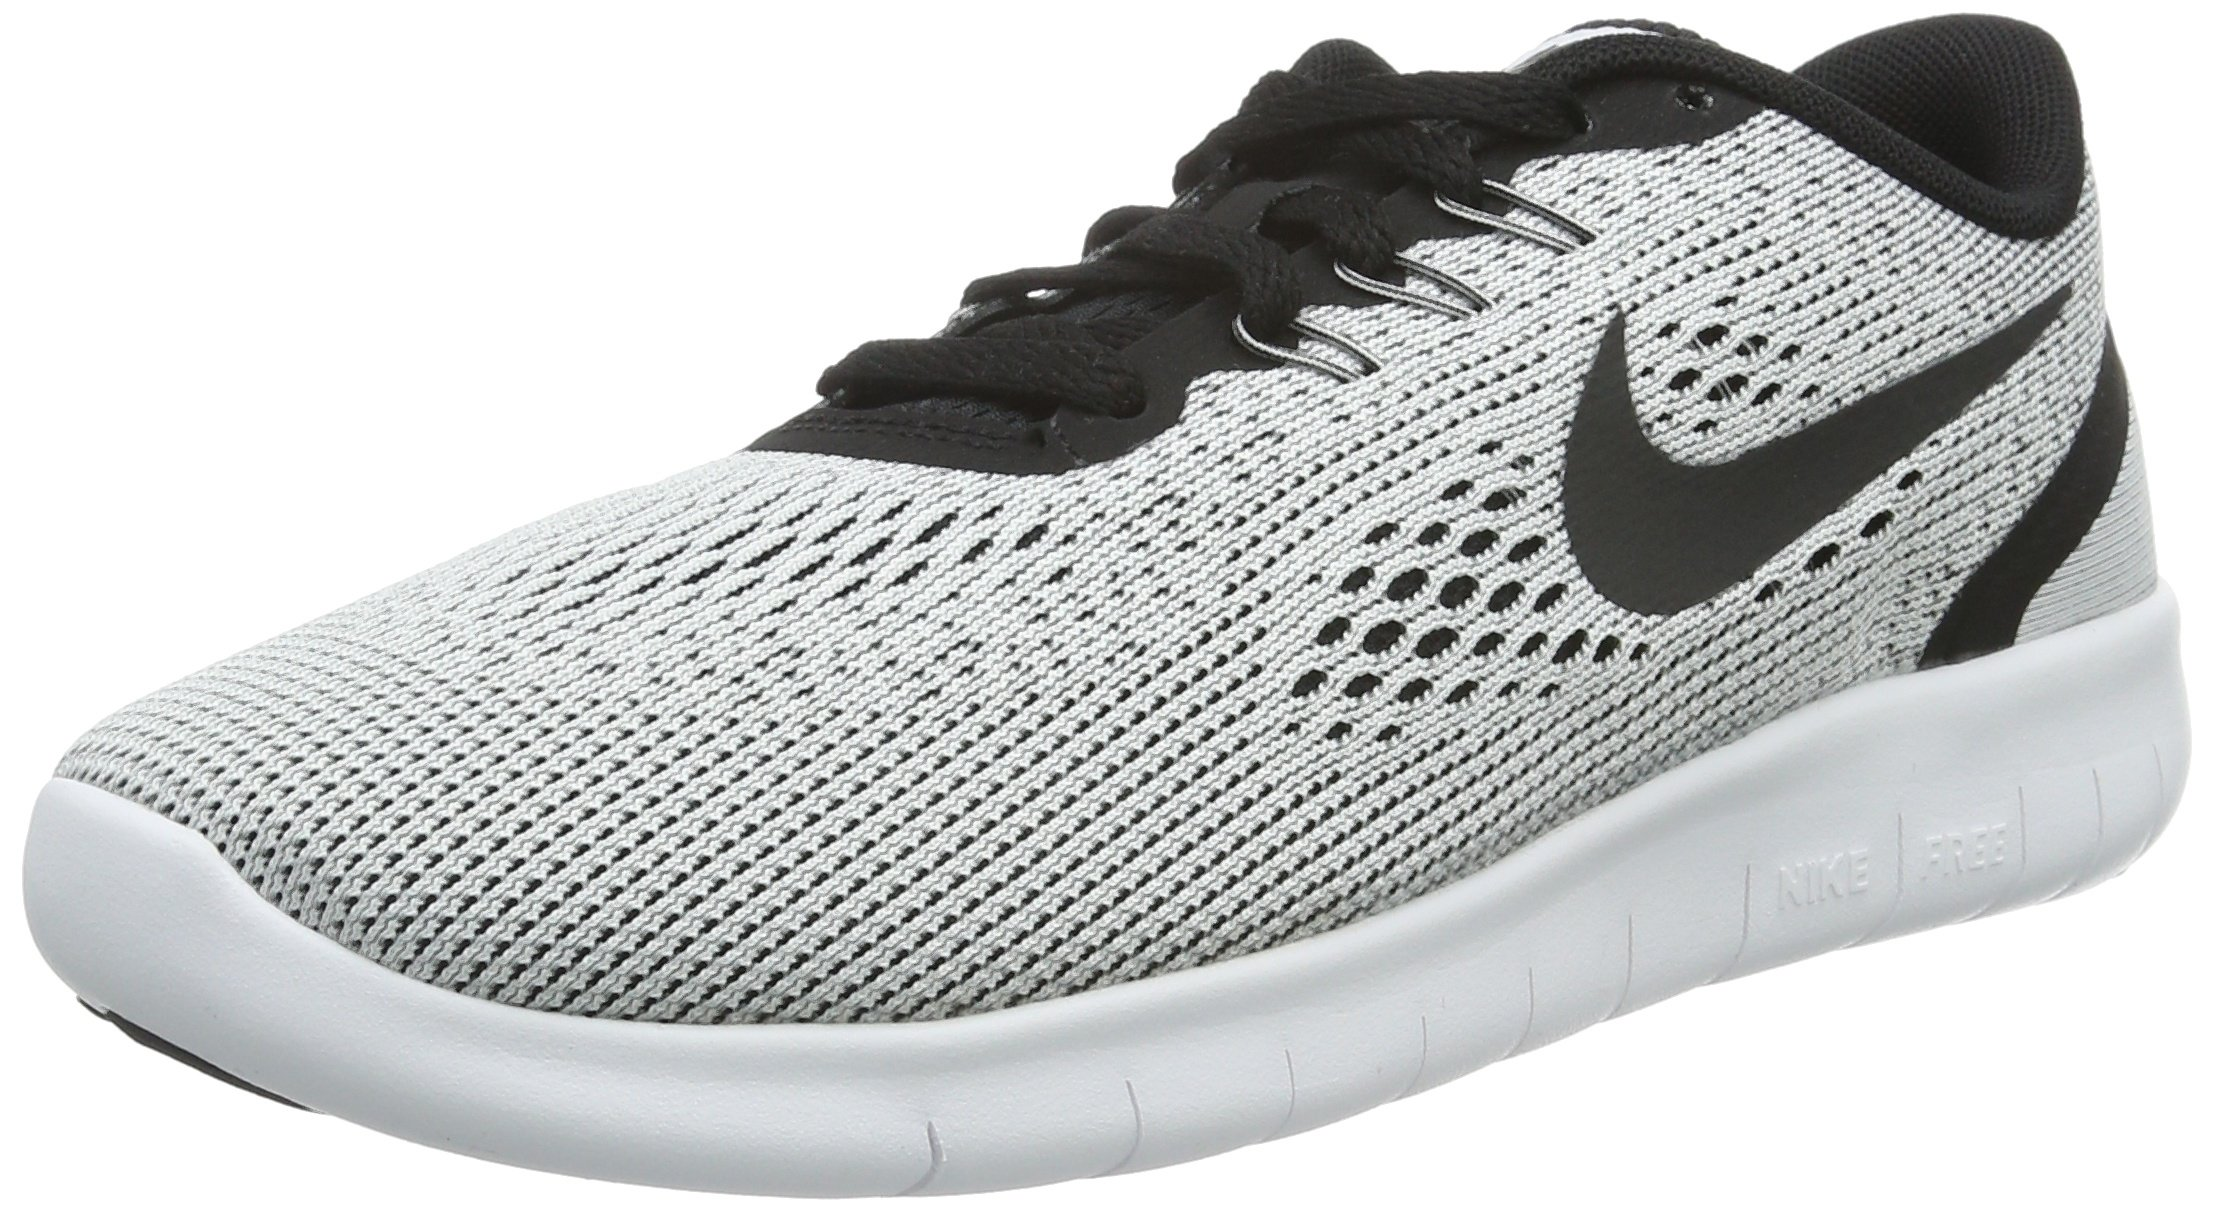 NIKE Youth Free RN Running Shoes-White/Black-3.5 by NIKE